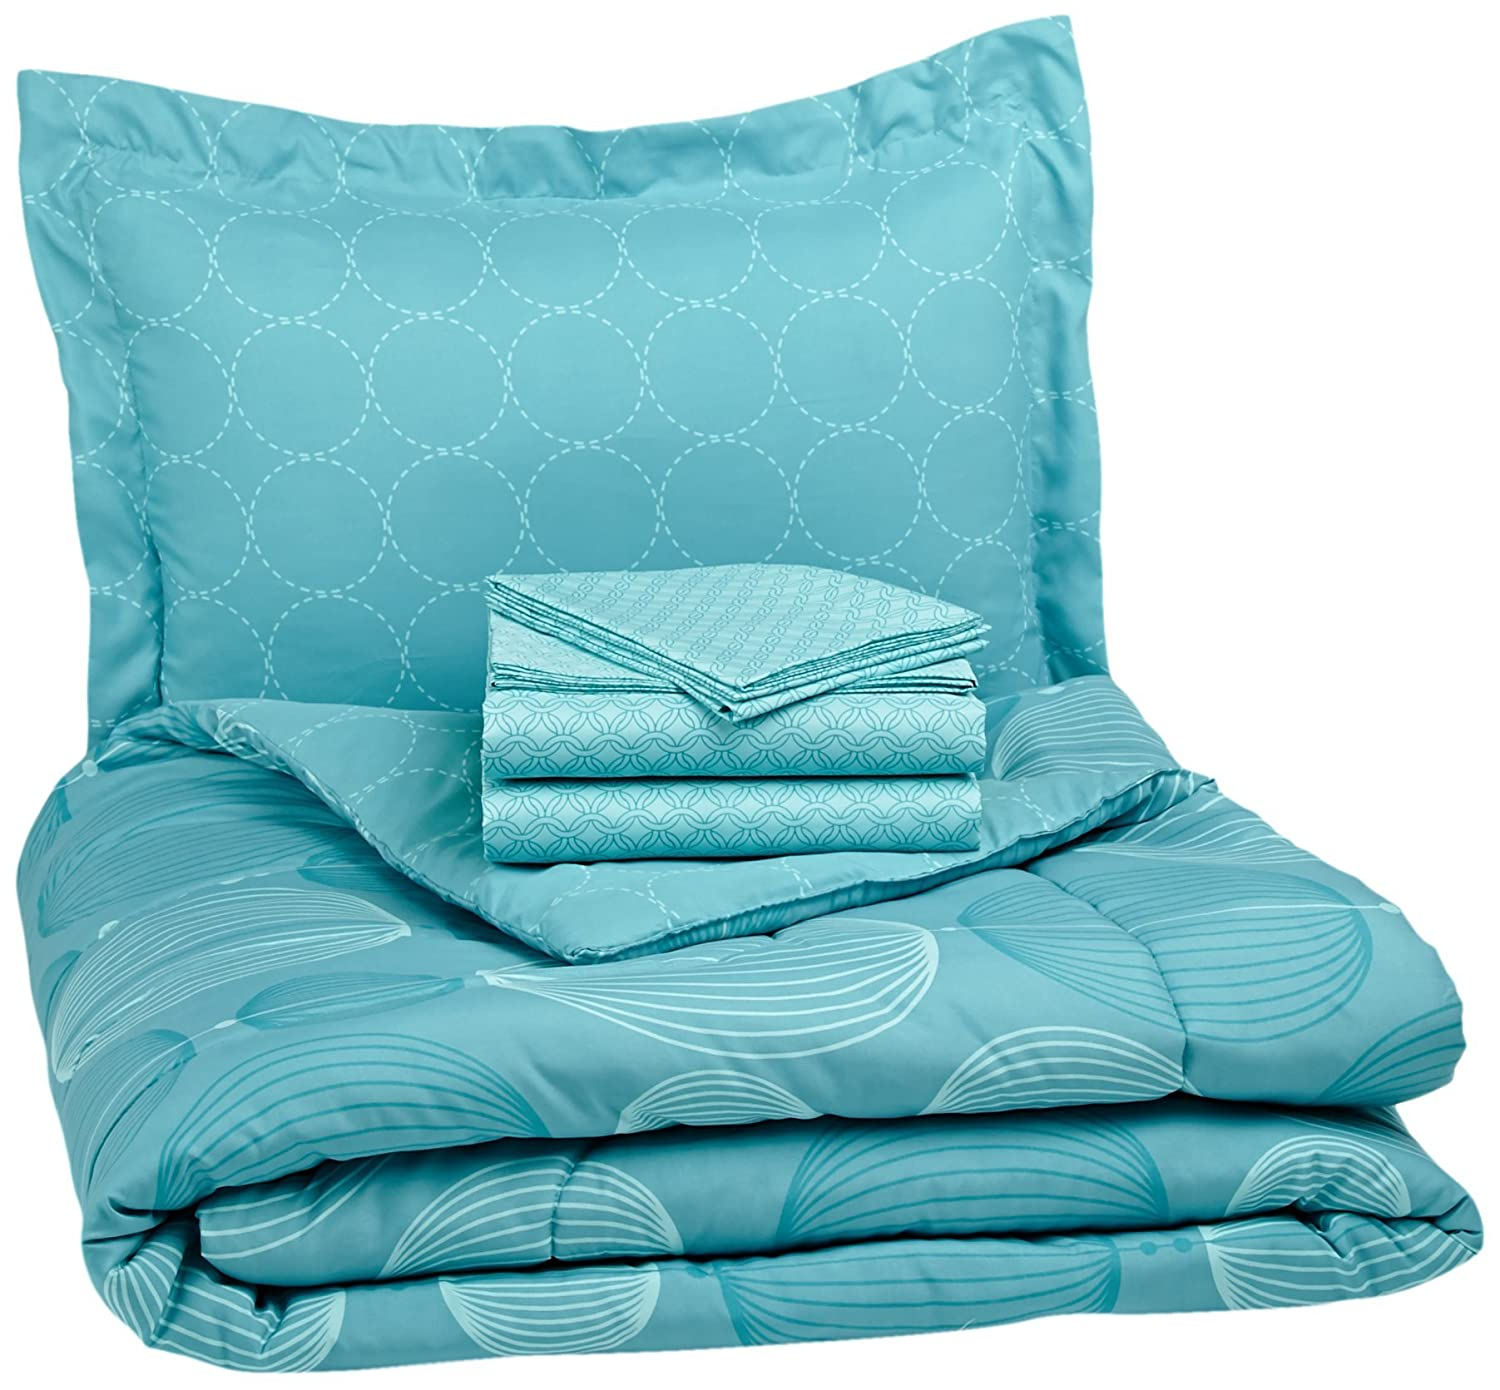 AmazonBasics 7-Piece Bed-In-A-Bag, Full/Queen, Industrial Teal BIAB-IVT-FL/QN-JS